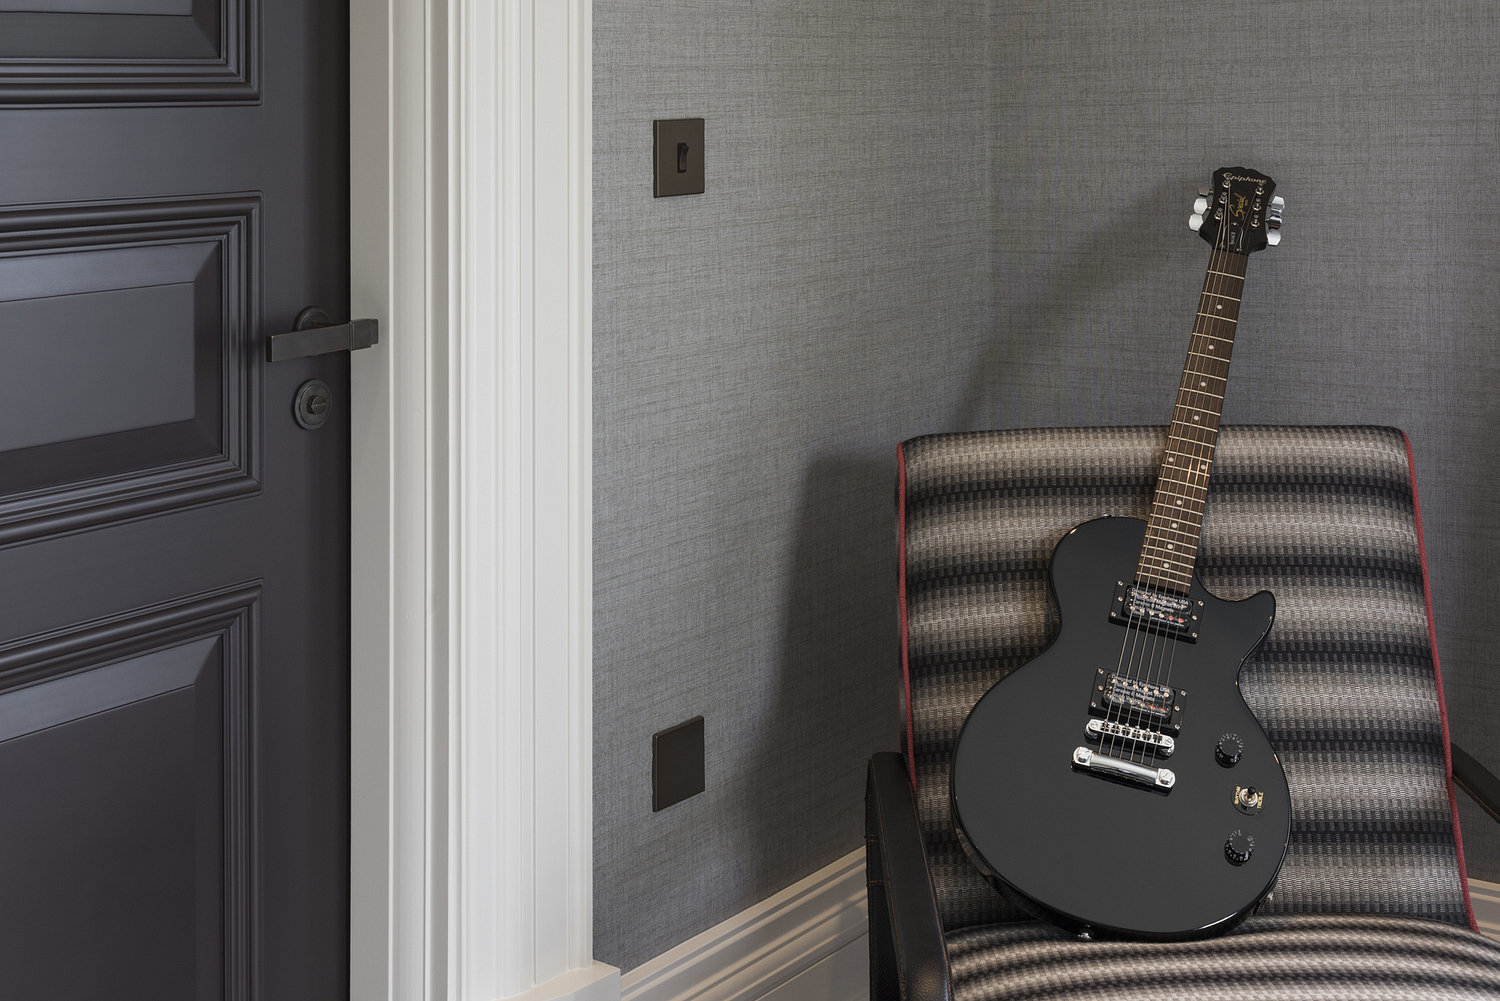 Bedroom chair with guitar, London